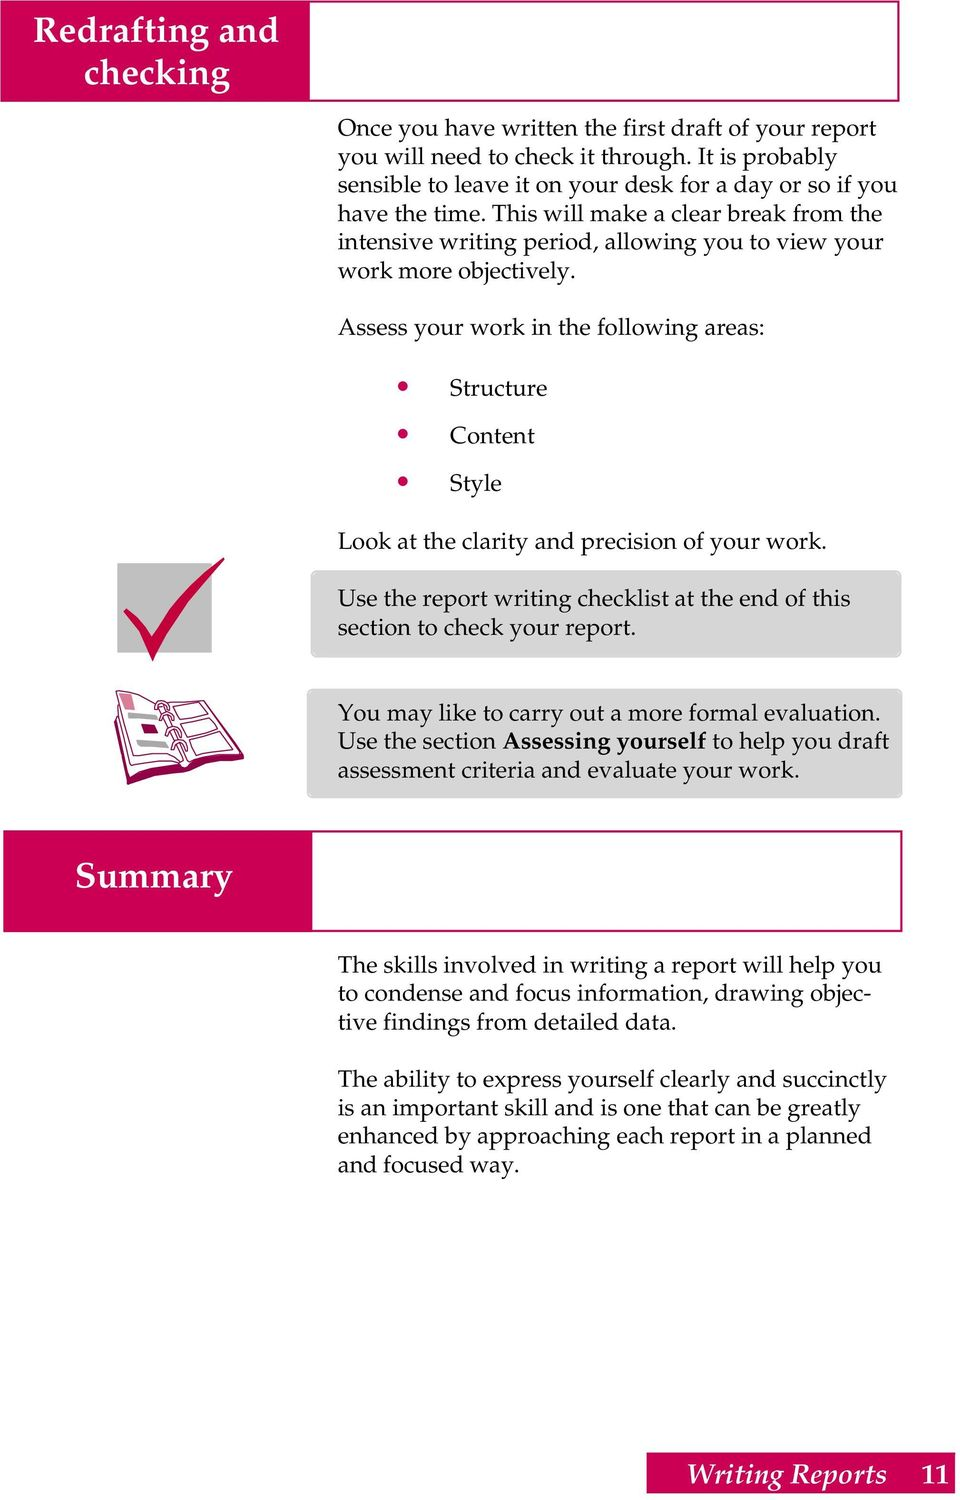 Assess your work in the following areas: Structure Content Style Look at the clarity and precision of your work. Use the report writing checklist at the end of this section to check your report.